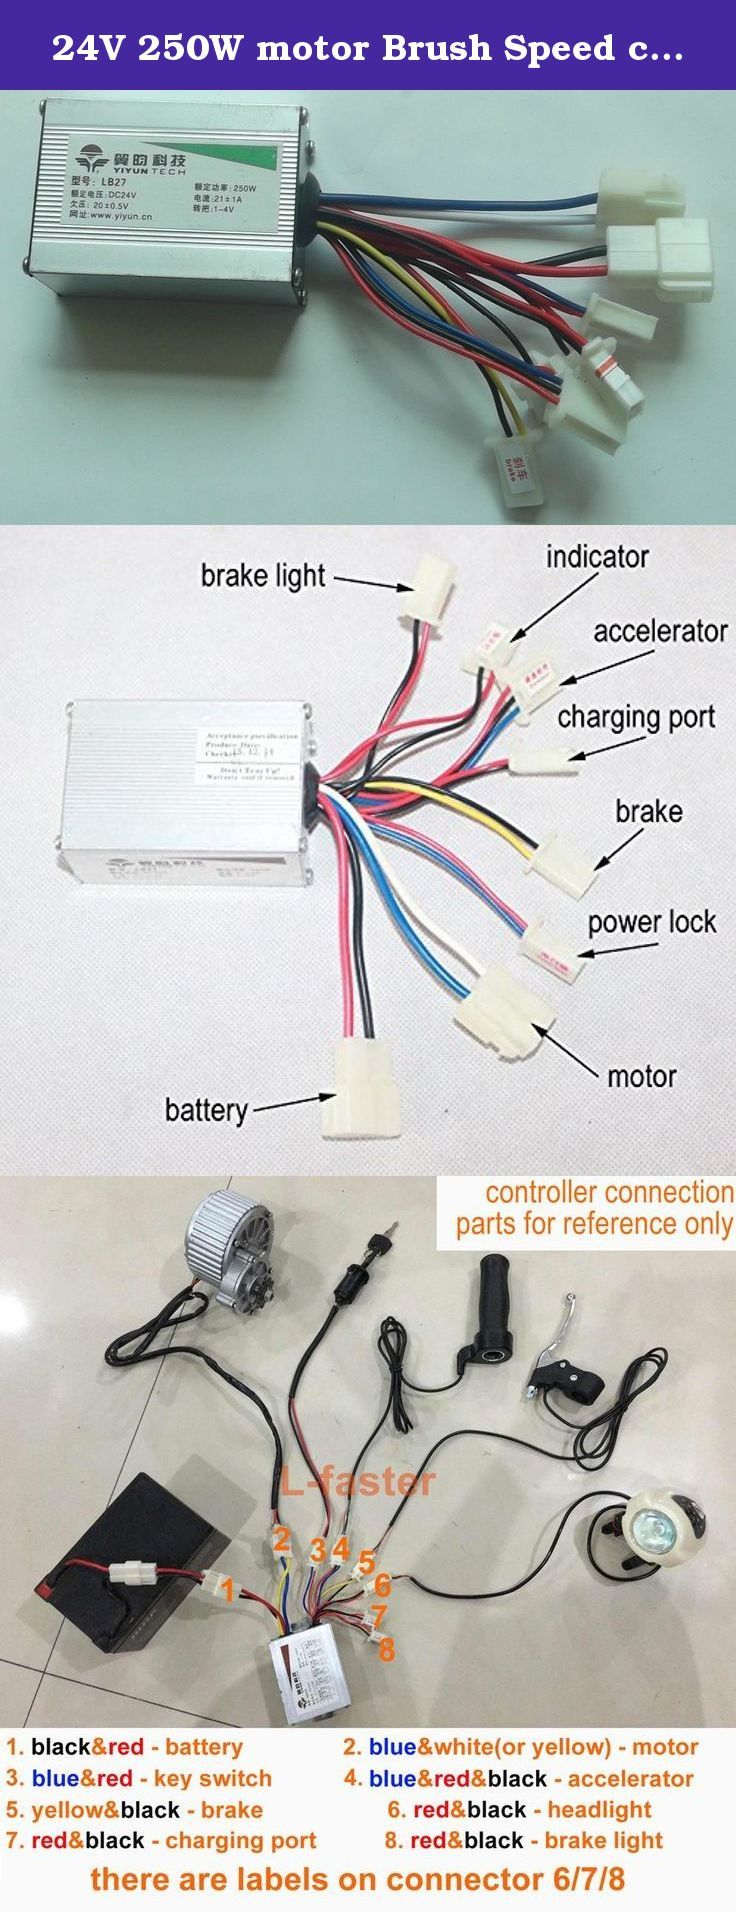 24v 250w motor brush speed controller for electric bike bicycle & scooter   this item is